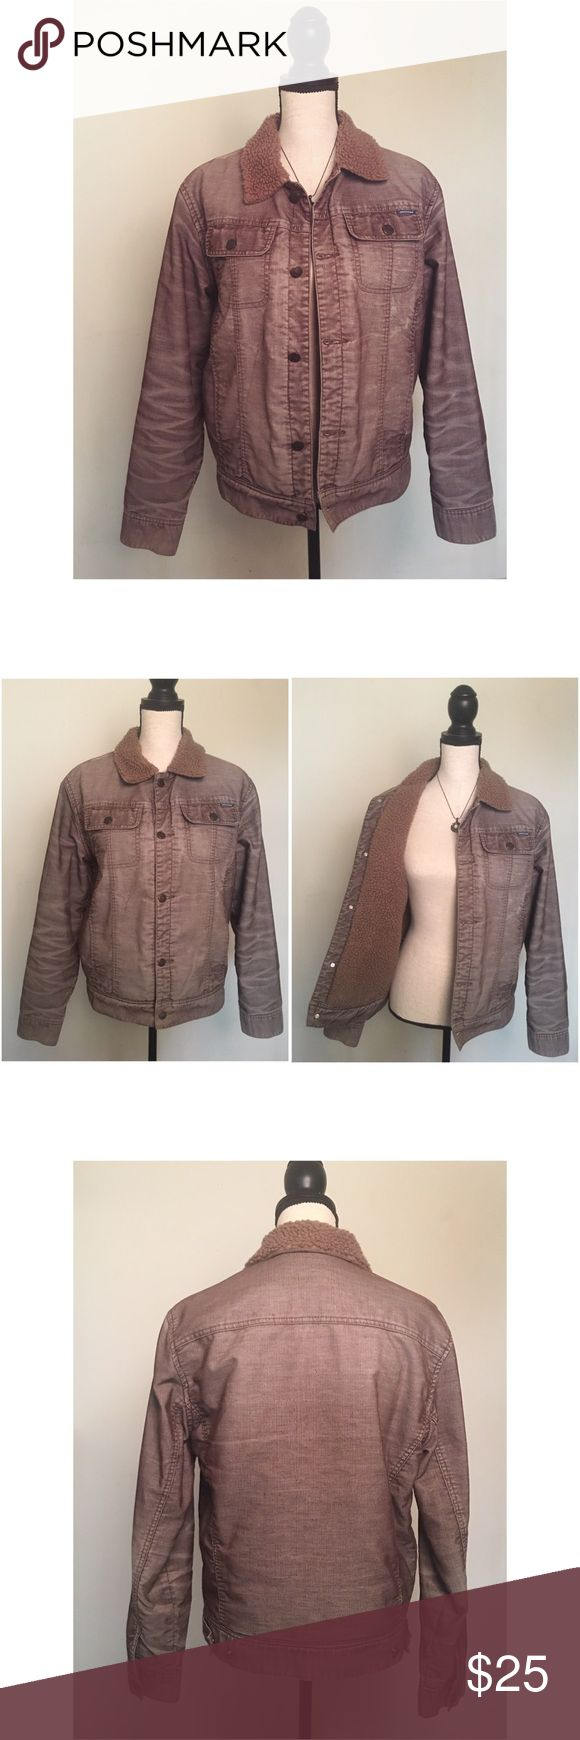 American Rag Trucker Jacket Feel like Sam Winchester in this awesome American Rag trucker. Keep warm with its thick lining. Two pockets on each side. Buttons securely attached. American Rag Jackets & Coats